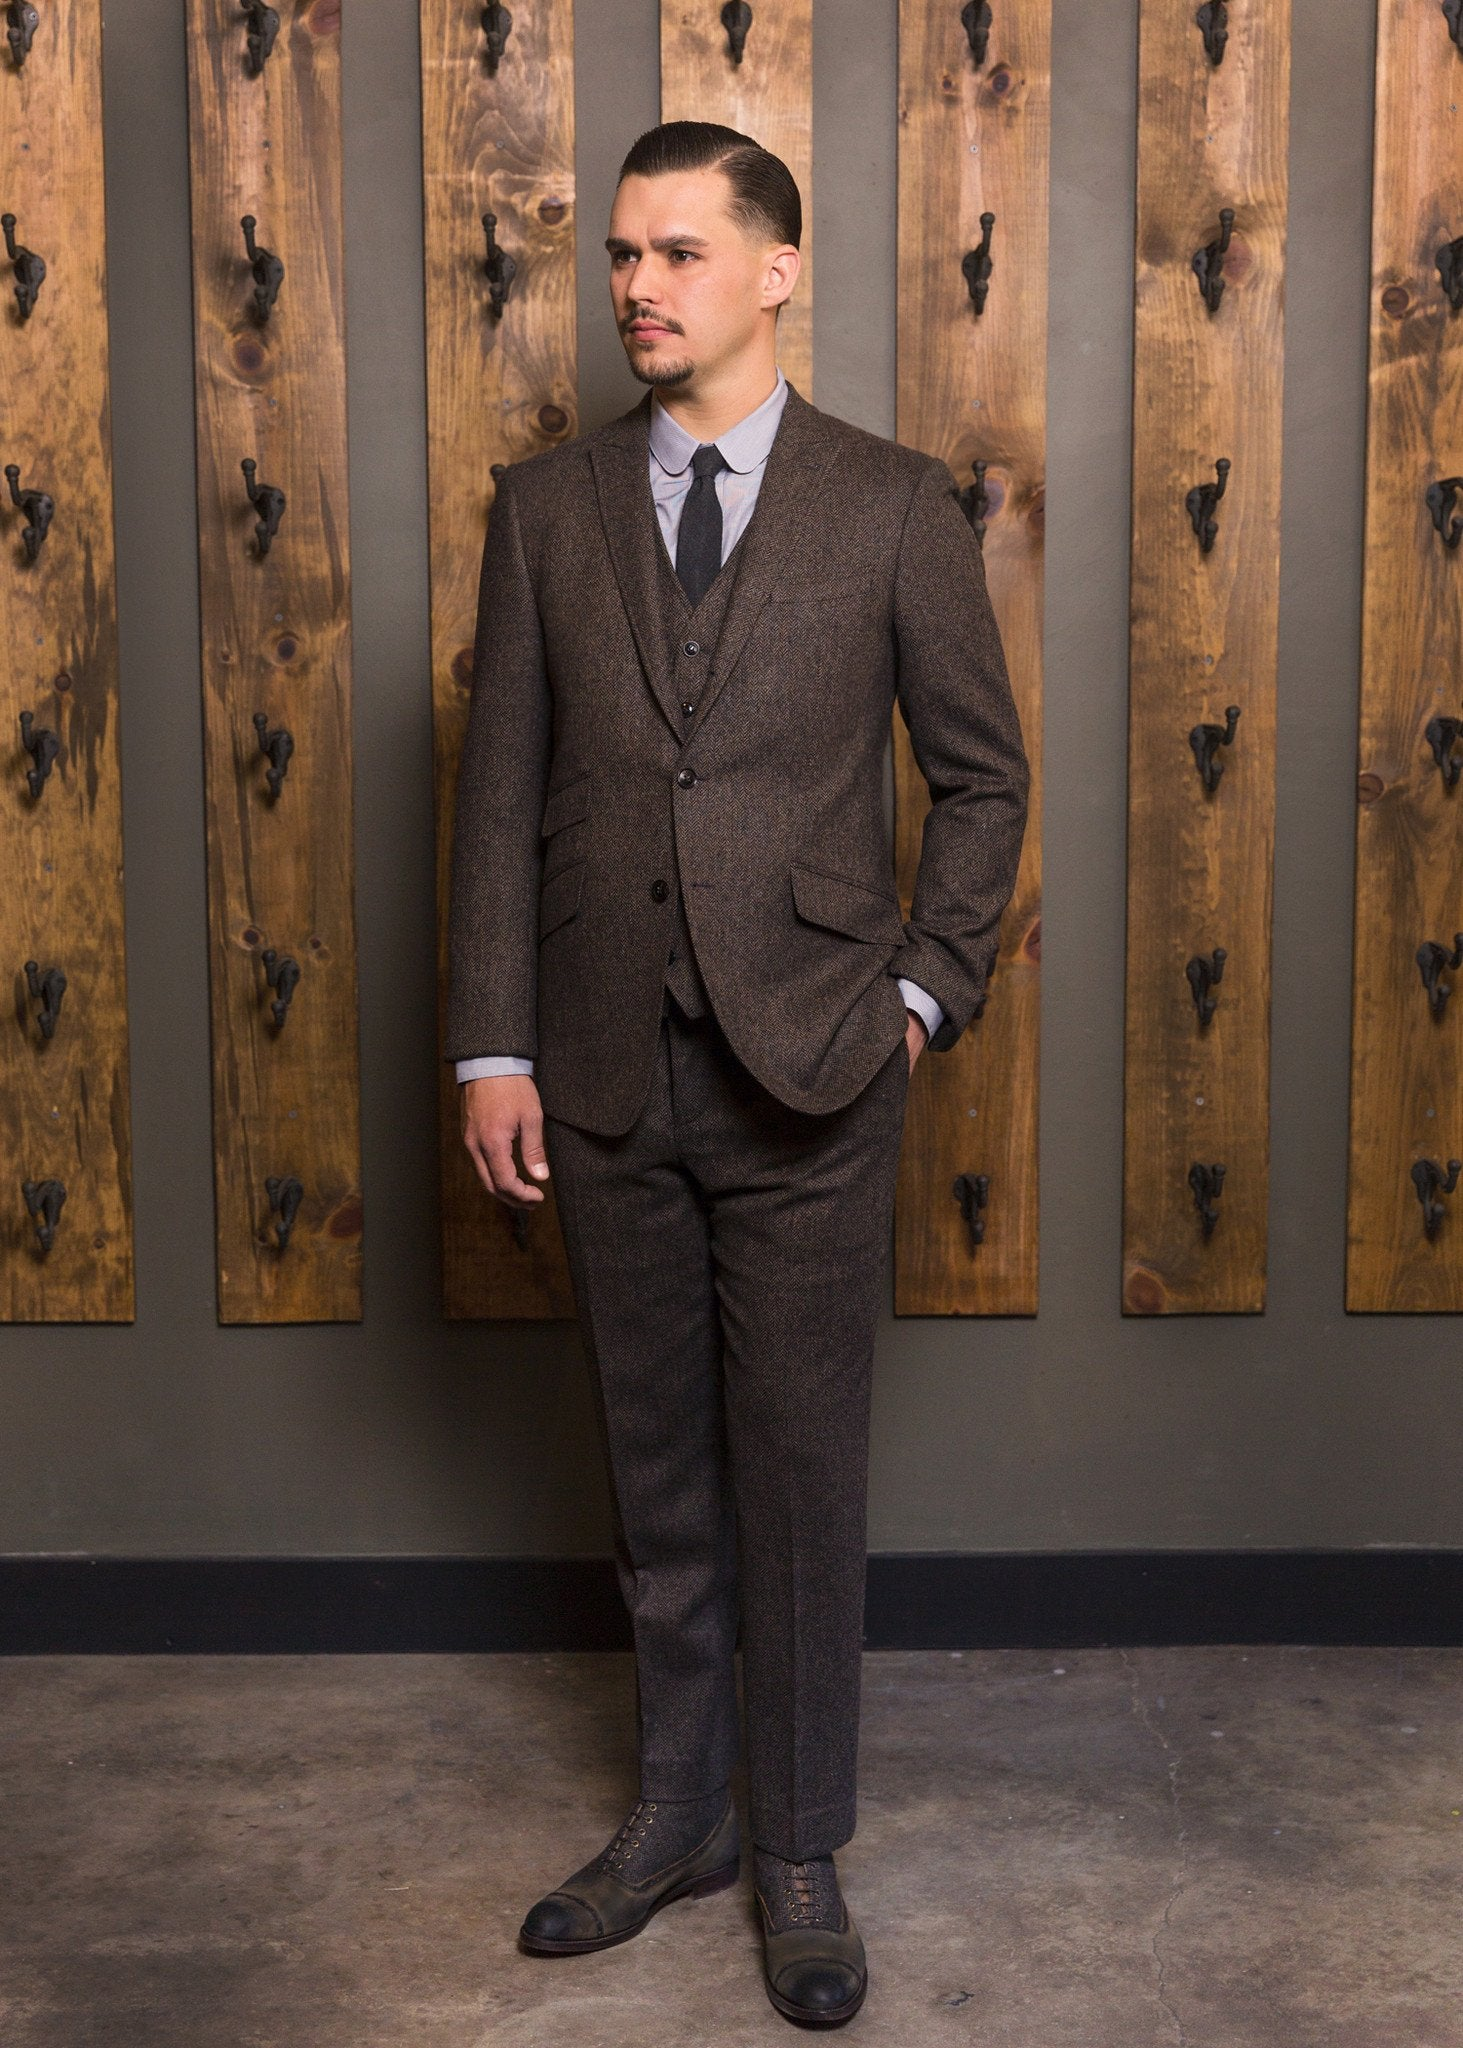 Crossley Suit-Bykowski Tailor & Garb slim fit Wool tailored fit Rustic semi peak lapel prohibition peaky blinders Made in USA heritage clothing Handcrafted Gatsby English Tweed Edwardian Dapper Classic Art Deco 1930's 1920's 1910's